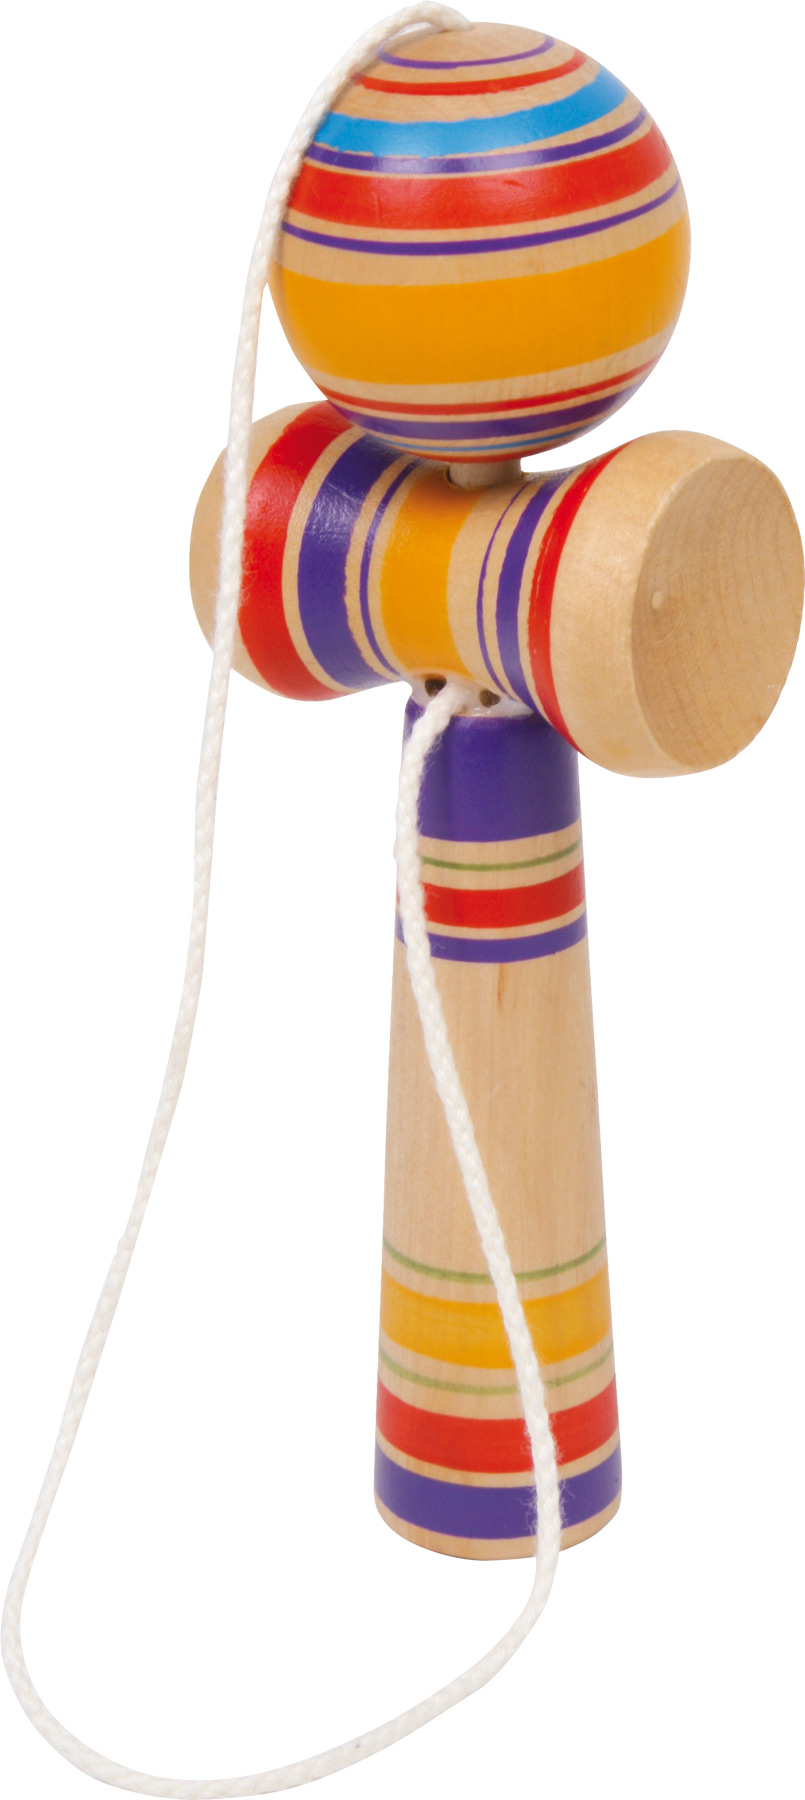 Small Foot Kendama farebná